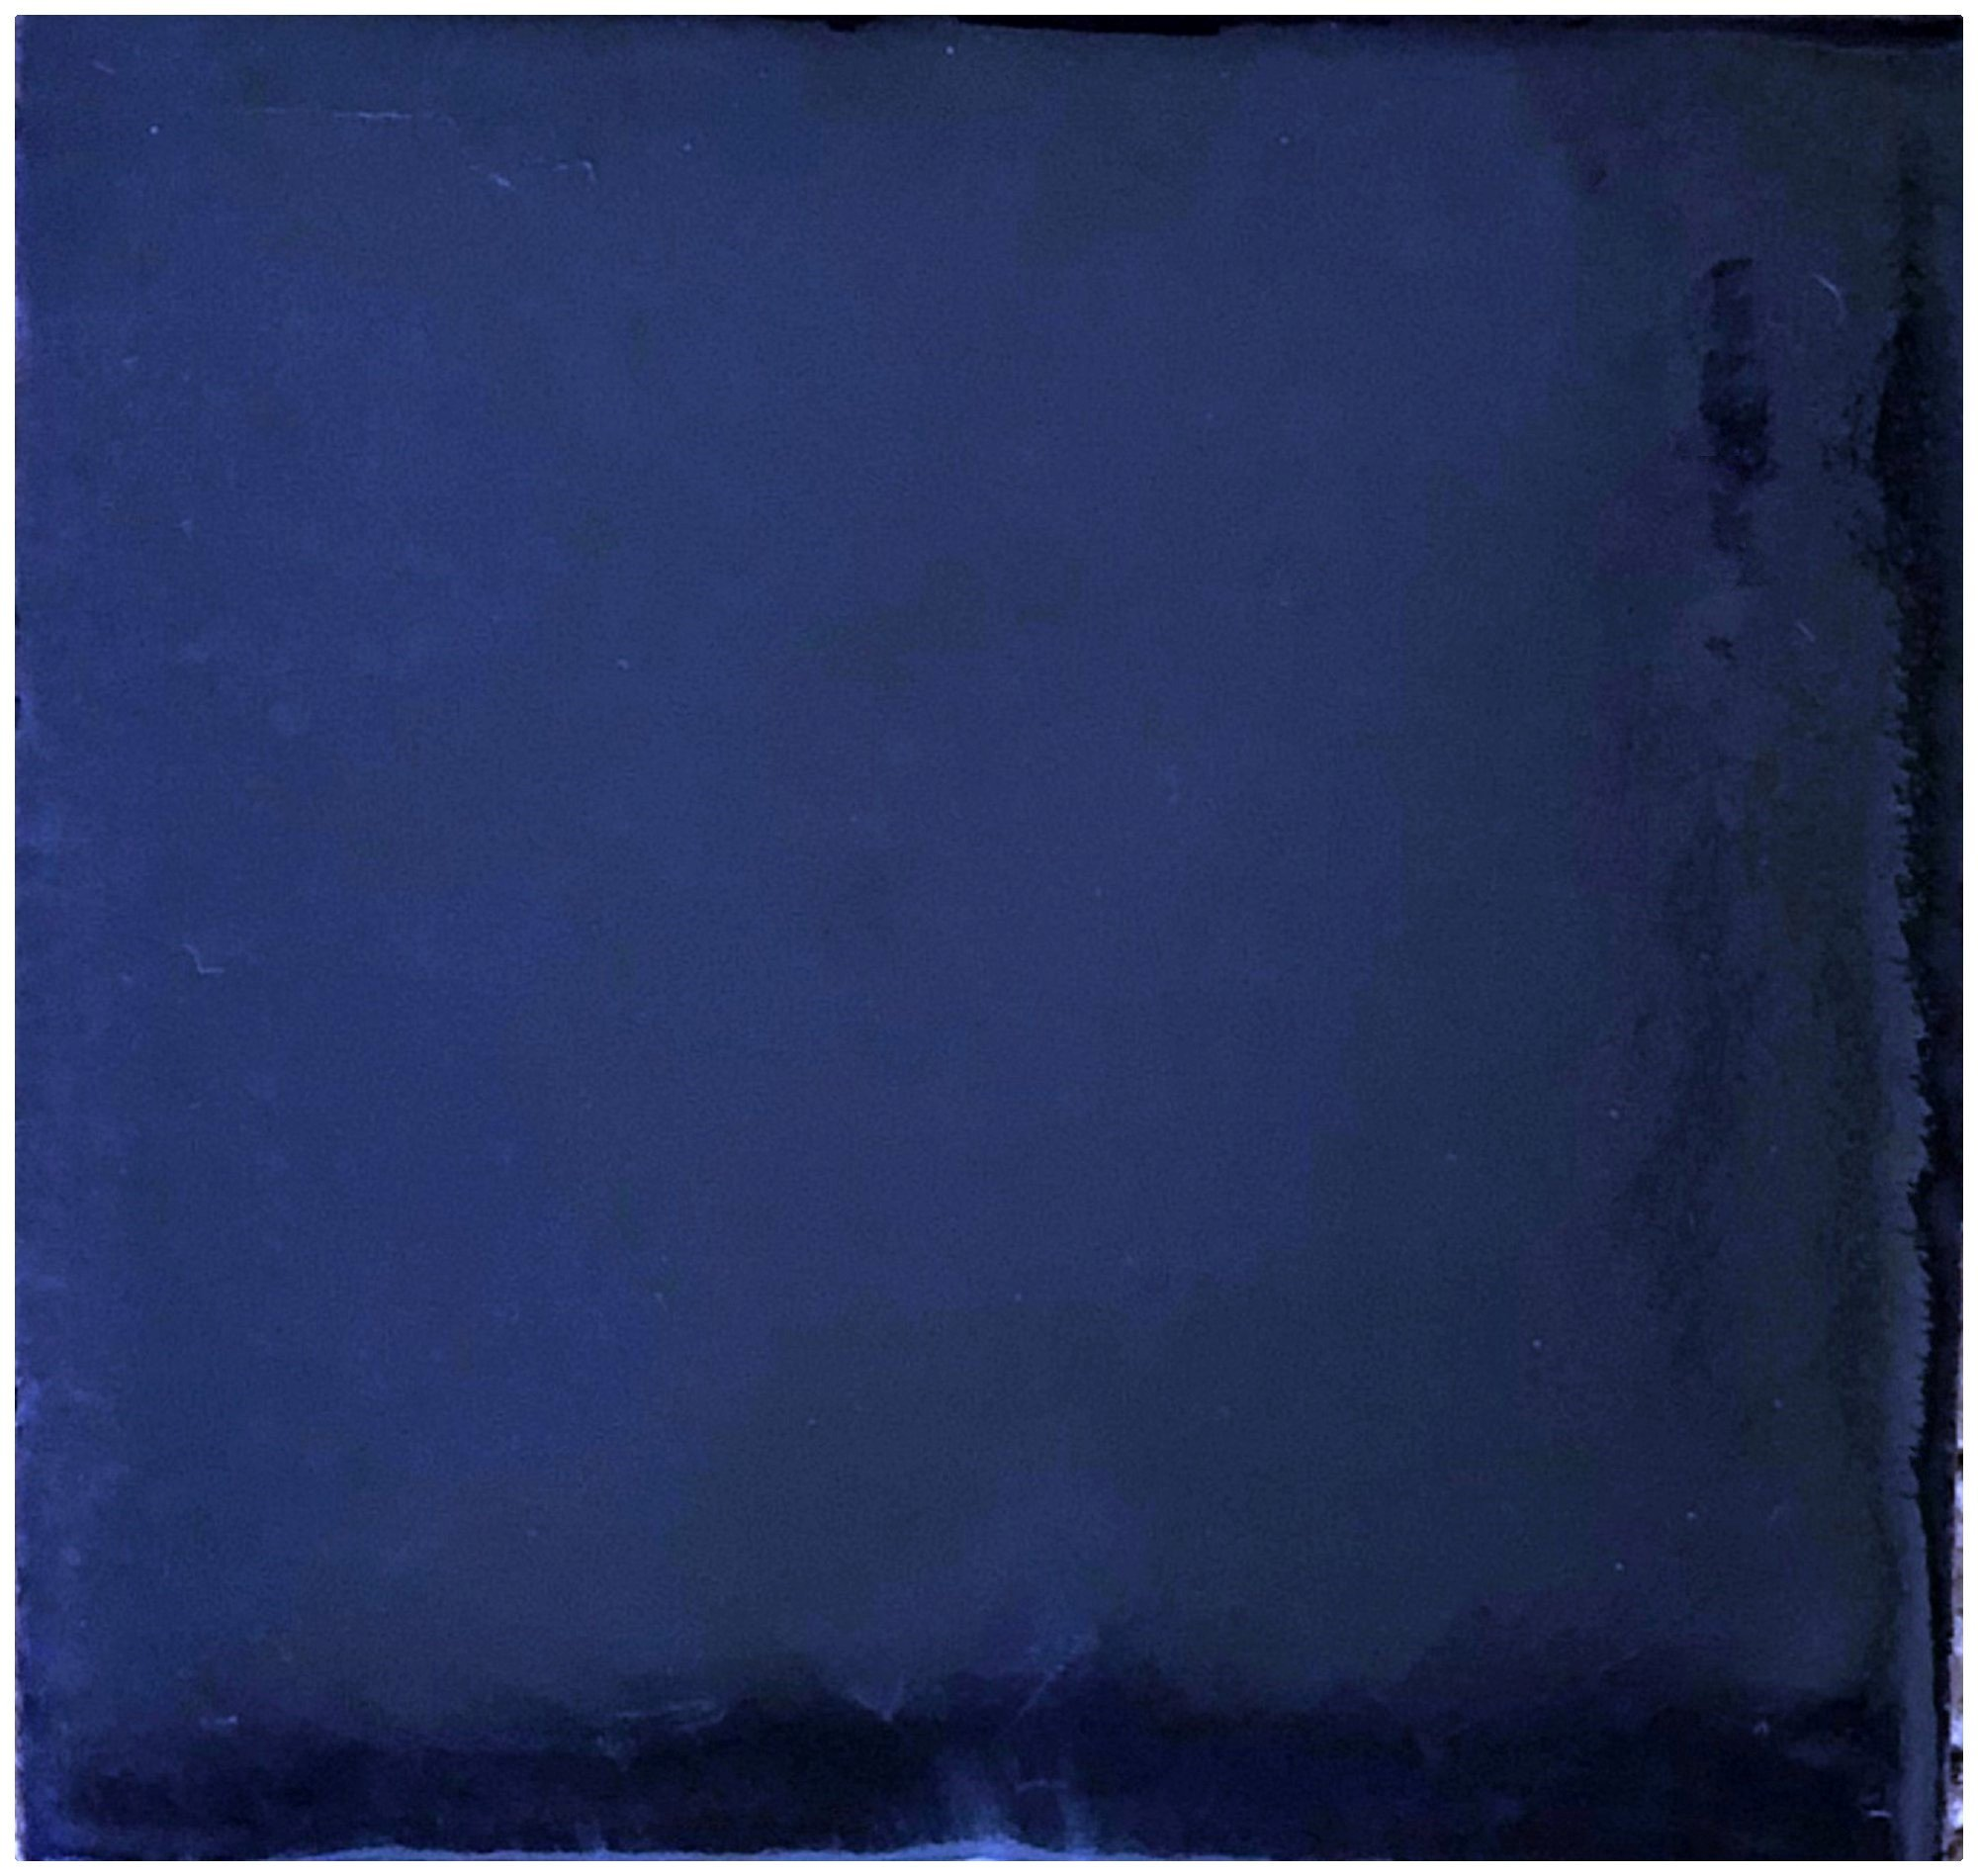 Rustico Tile and Stone TR4COBALT Cobalt Blue Painted Tile Box of 90 4 x 4'', Navy